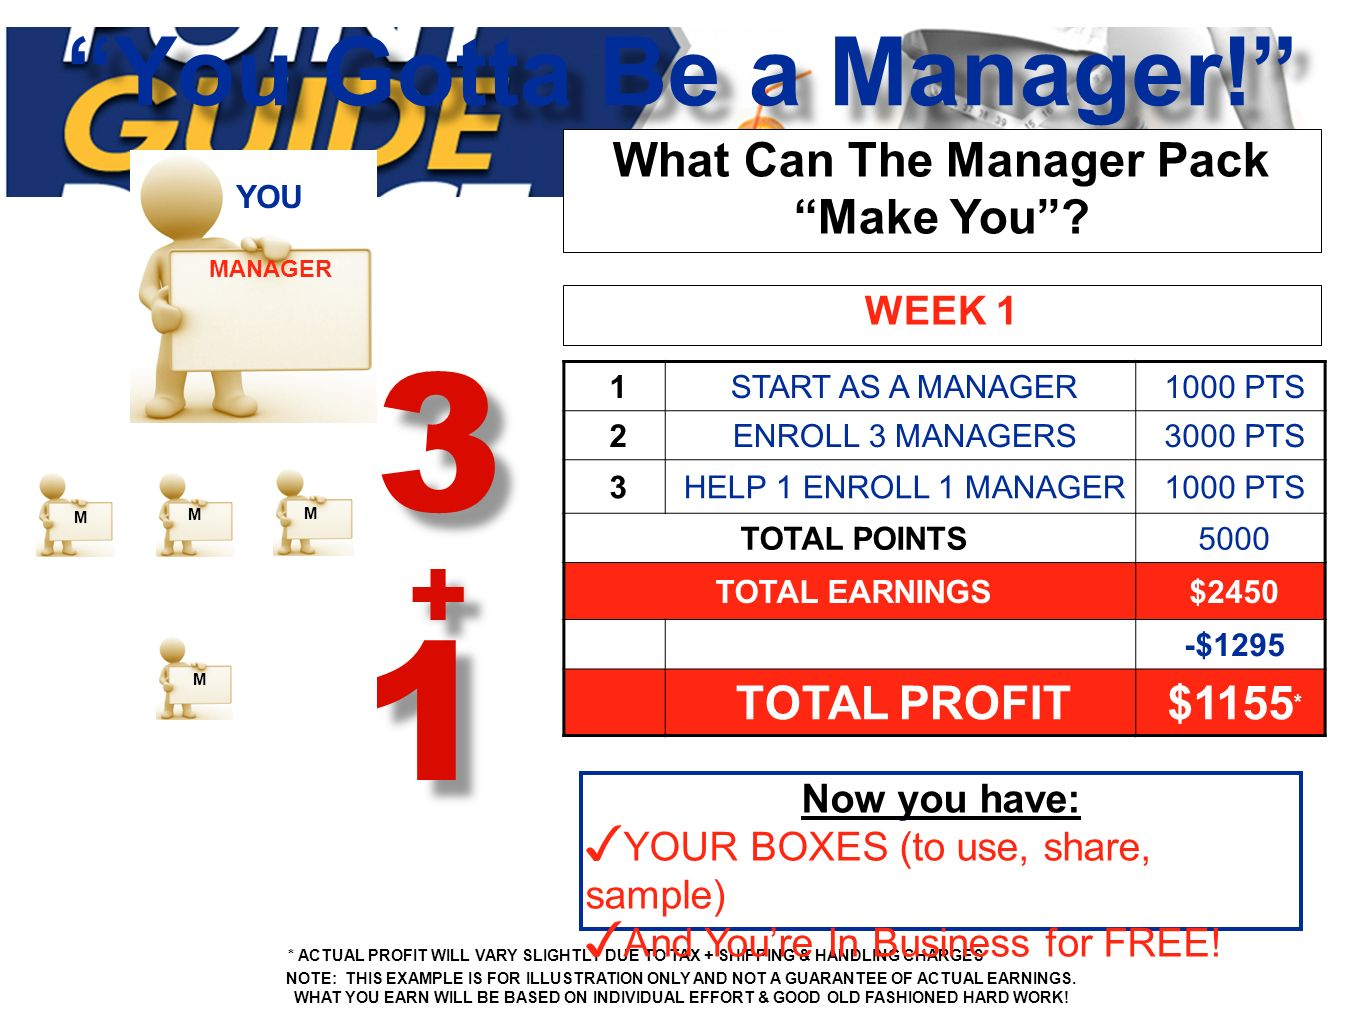 PROFIT SHEET You Gotta Be a Manager.